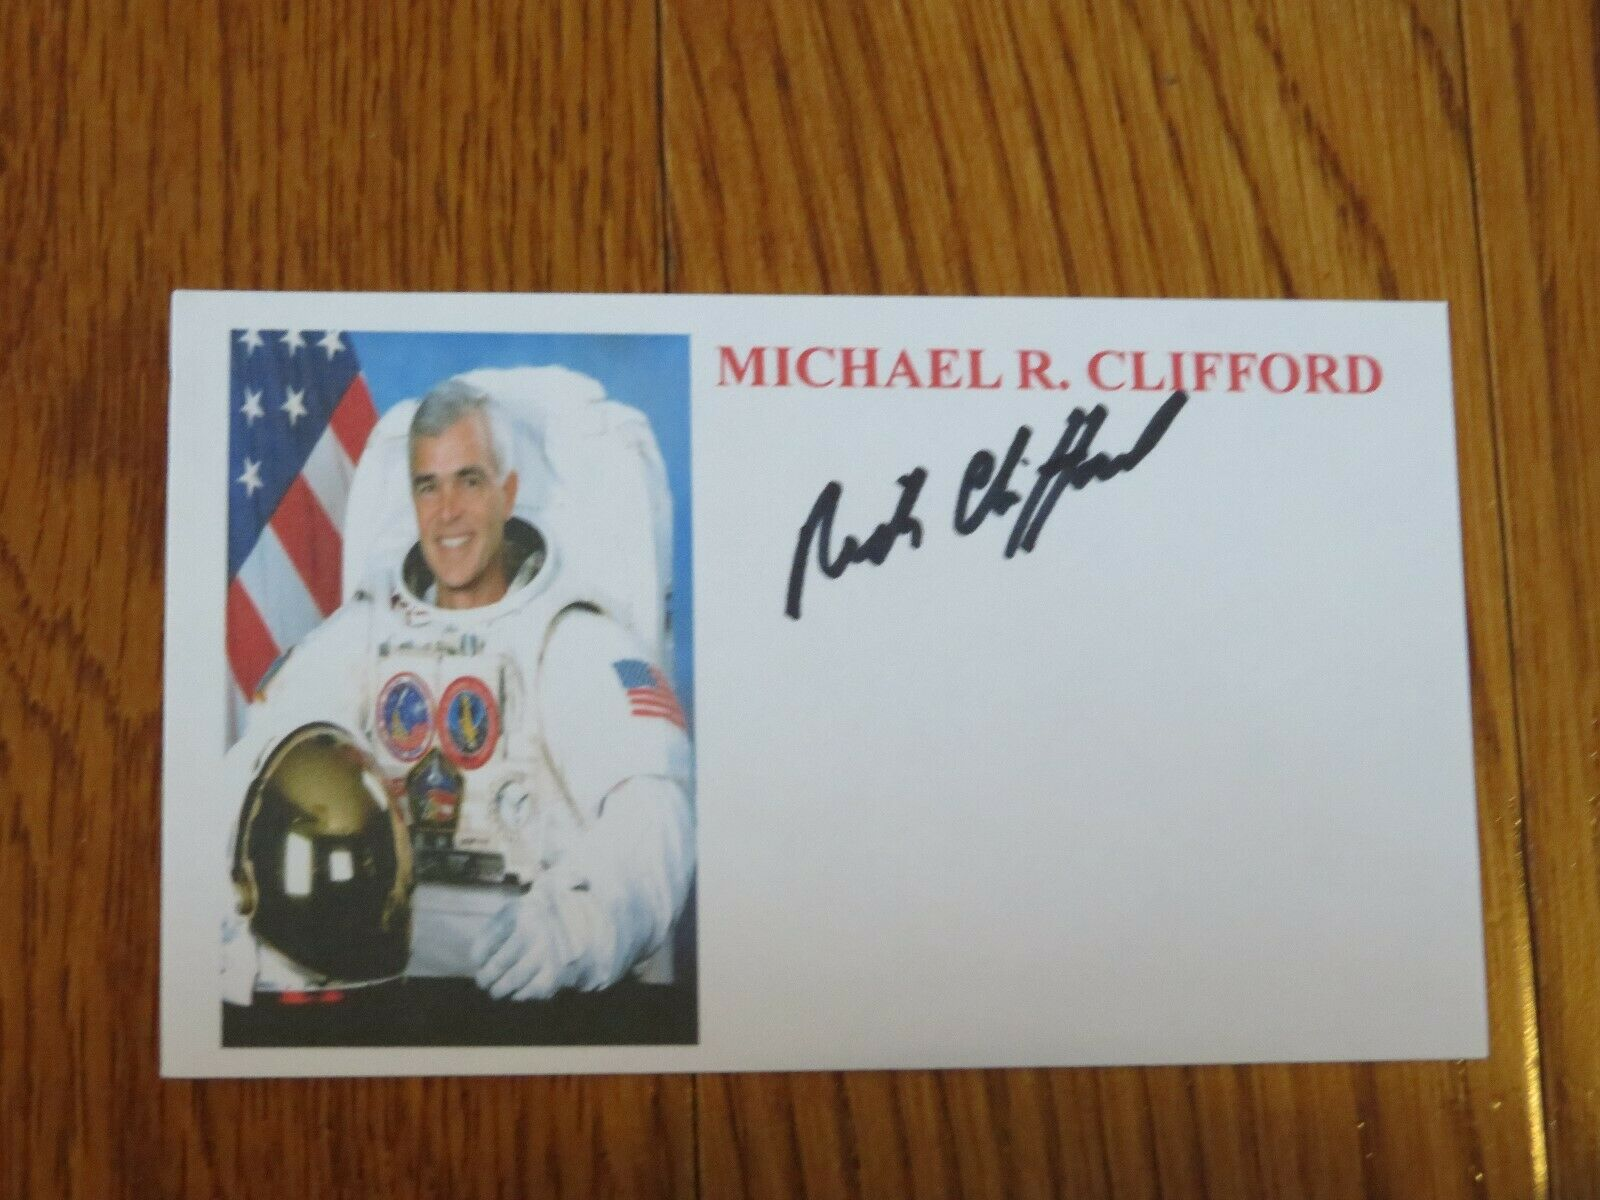 s l1600 - Michael Clifford Autographed 3x5 Card Hand Signed Space NASA Astronaut